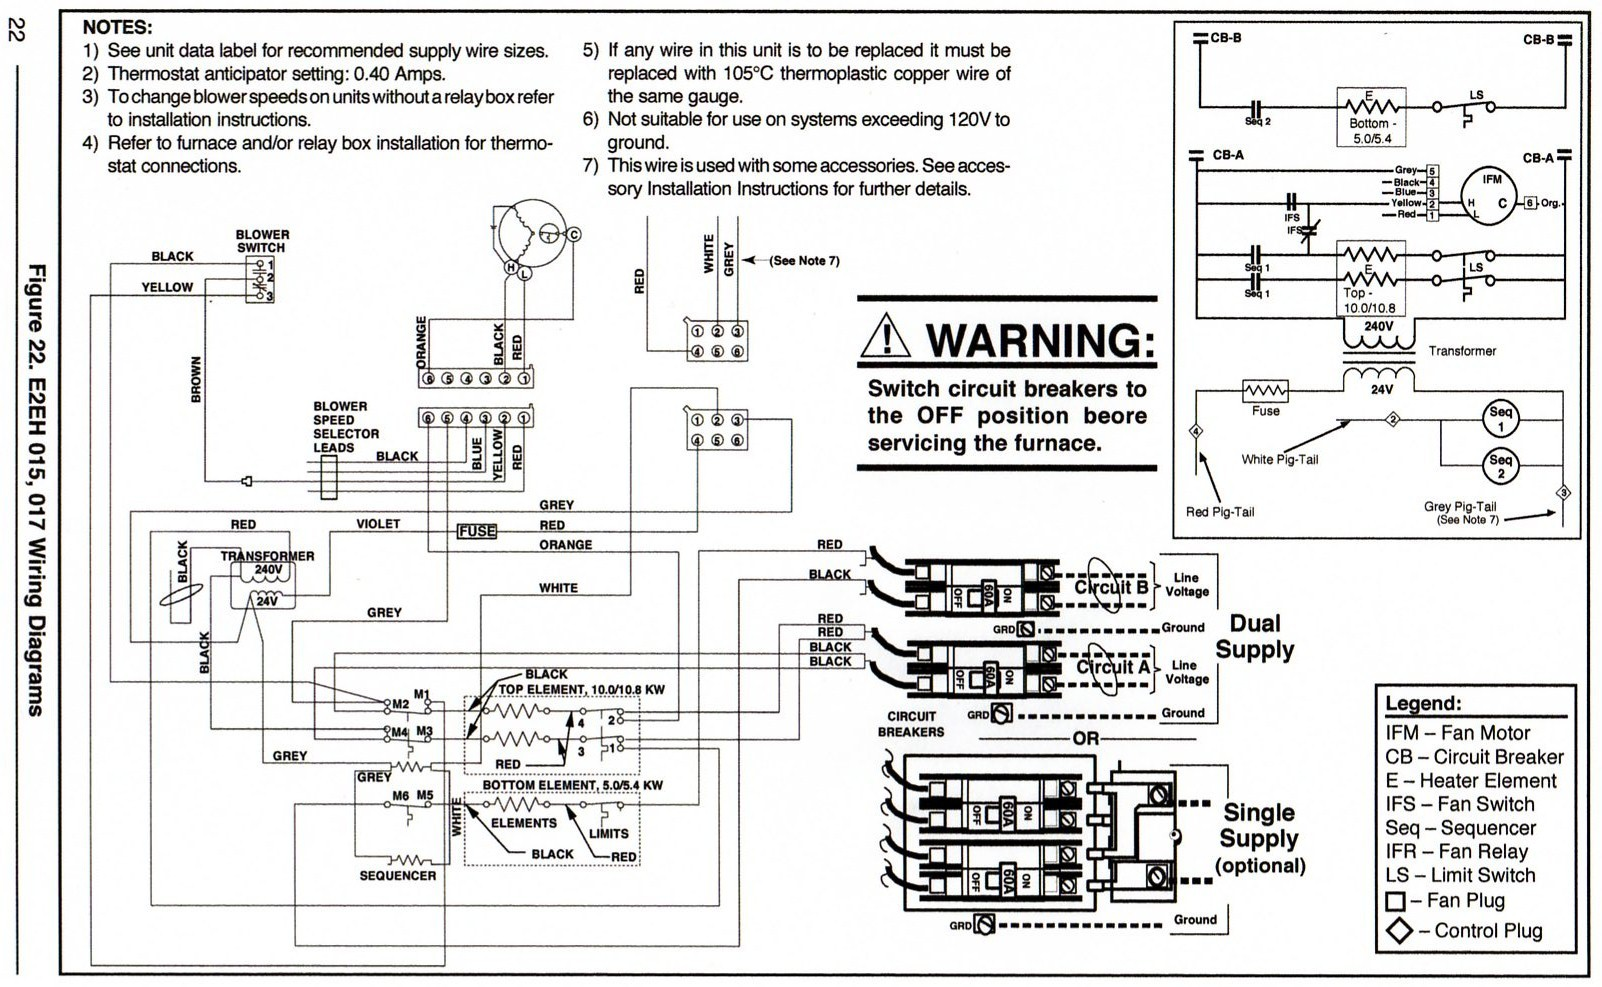 Wiring Diagram for Mobile Home Furnace